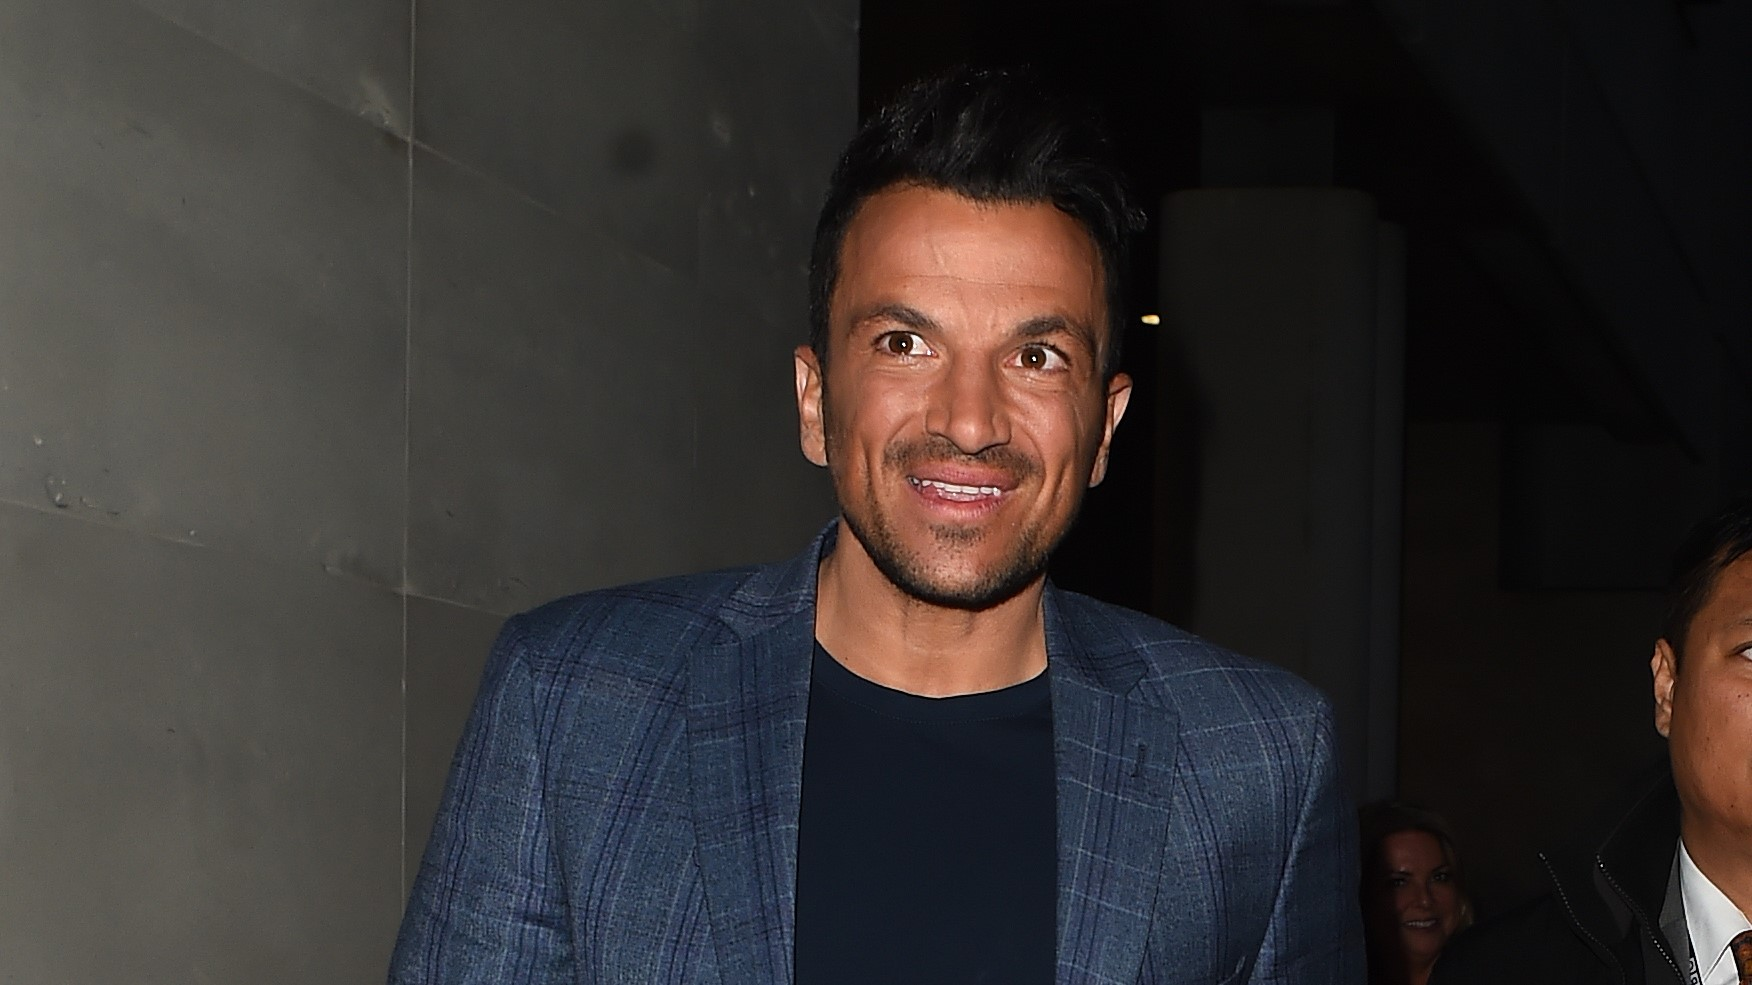 Peter Andre prepares to crack America as he signs deal with manager in the States